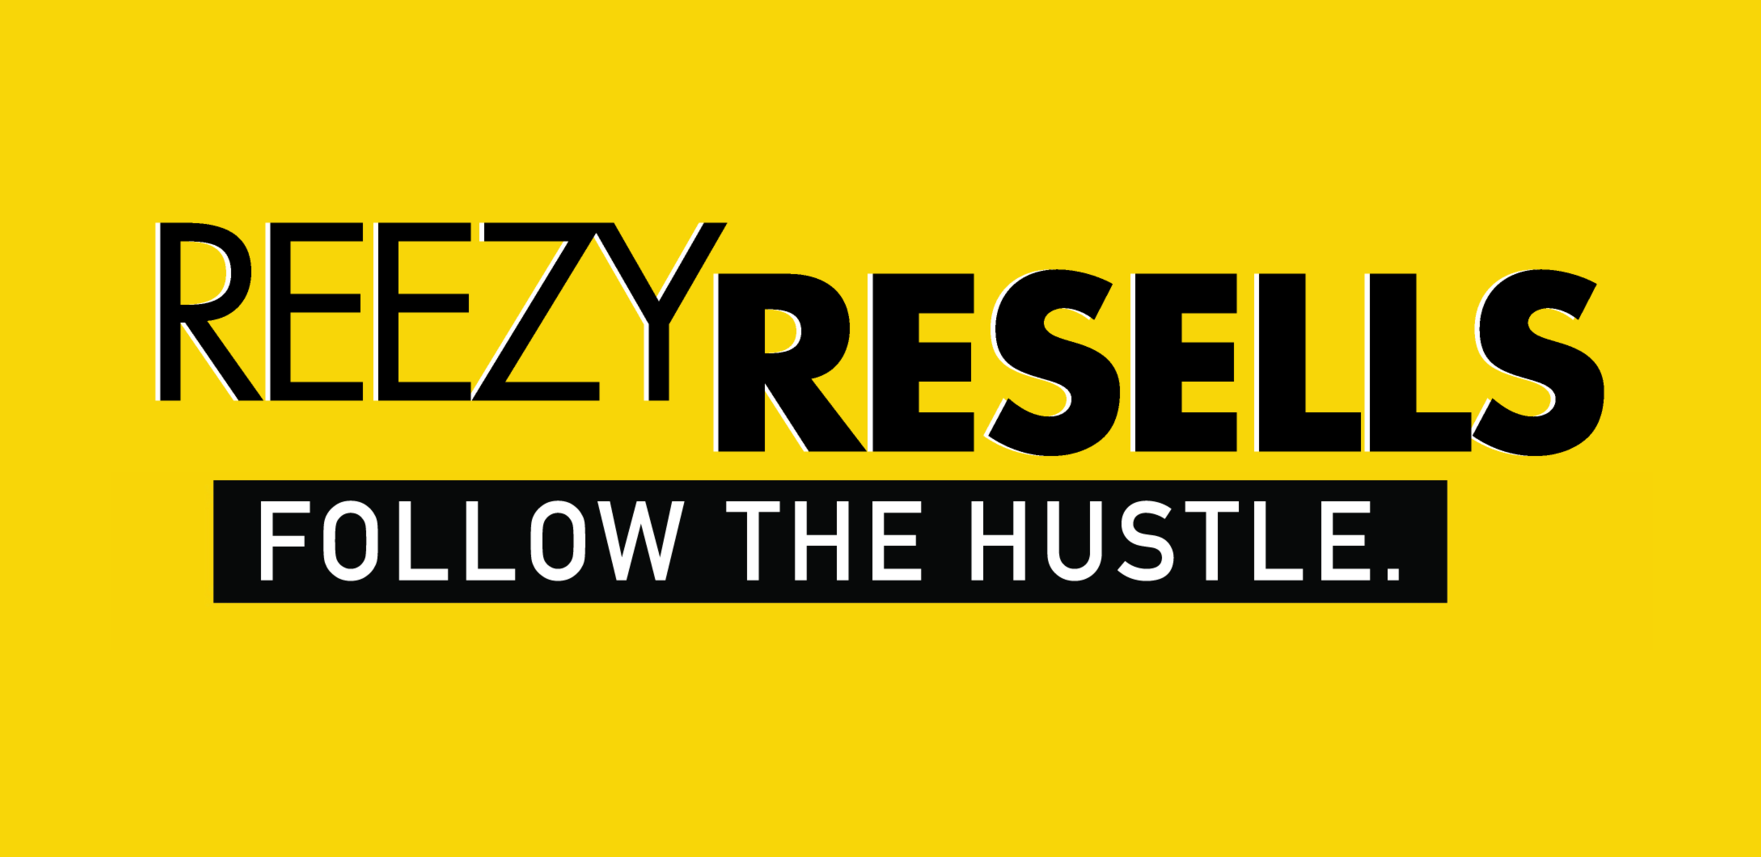 reezy-resells.png